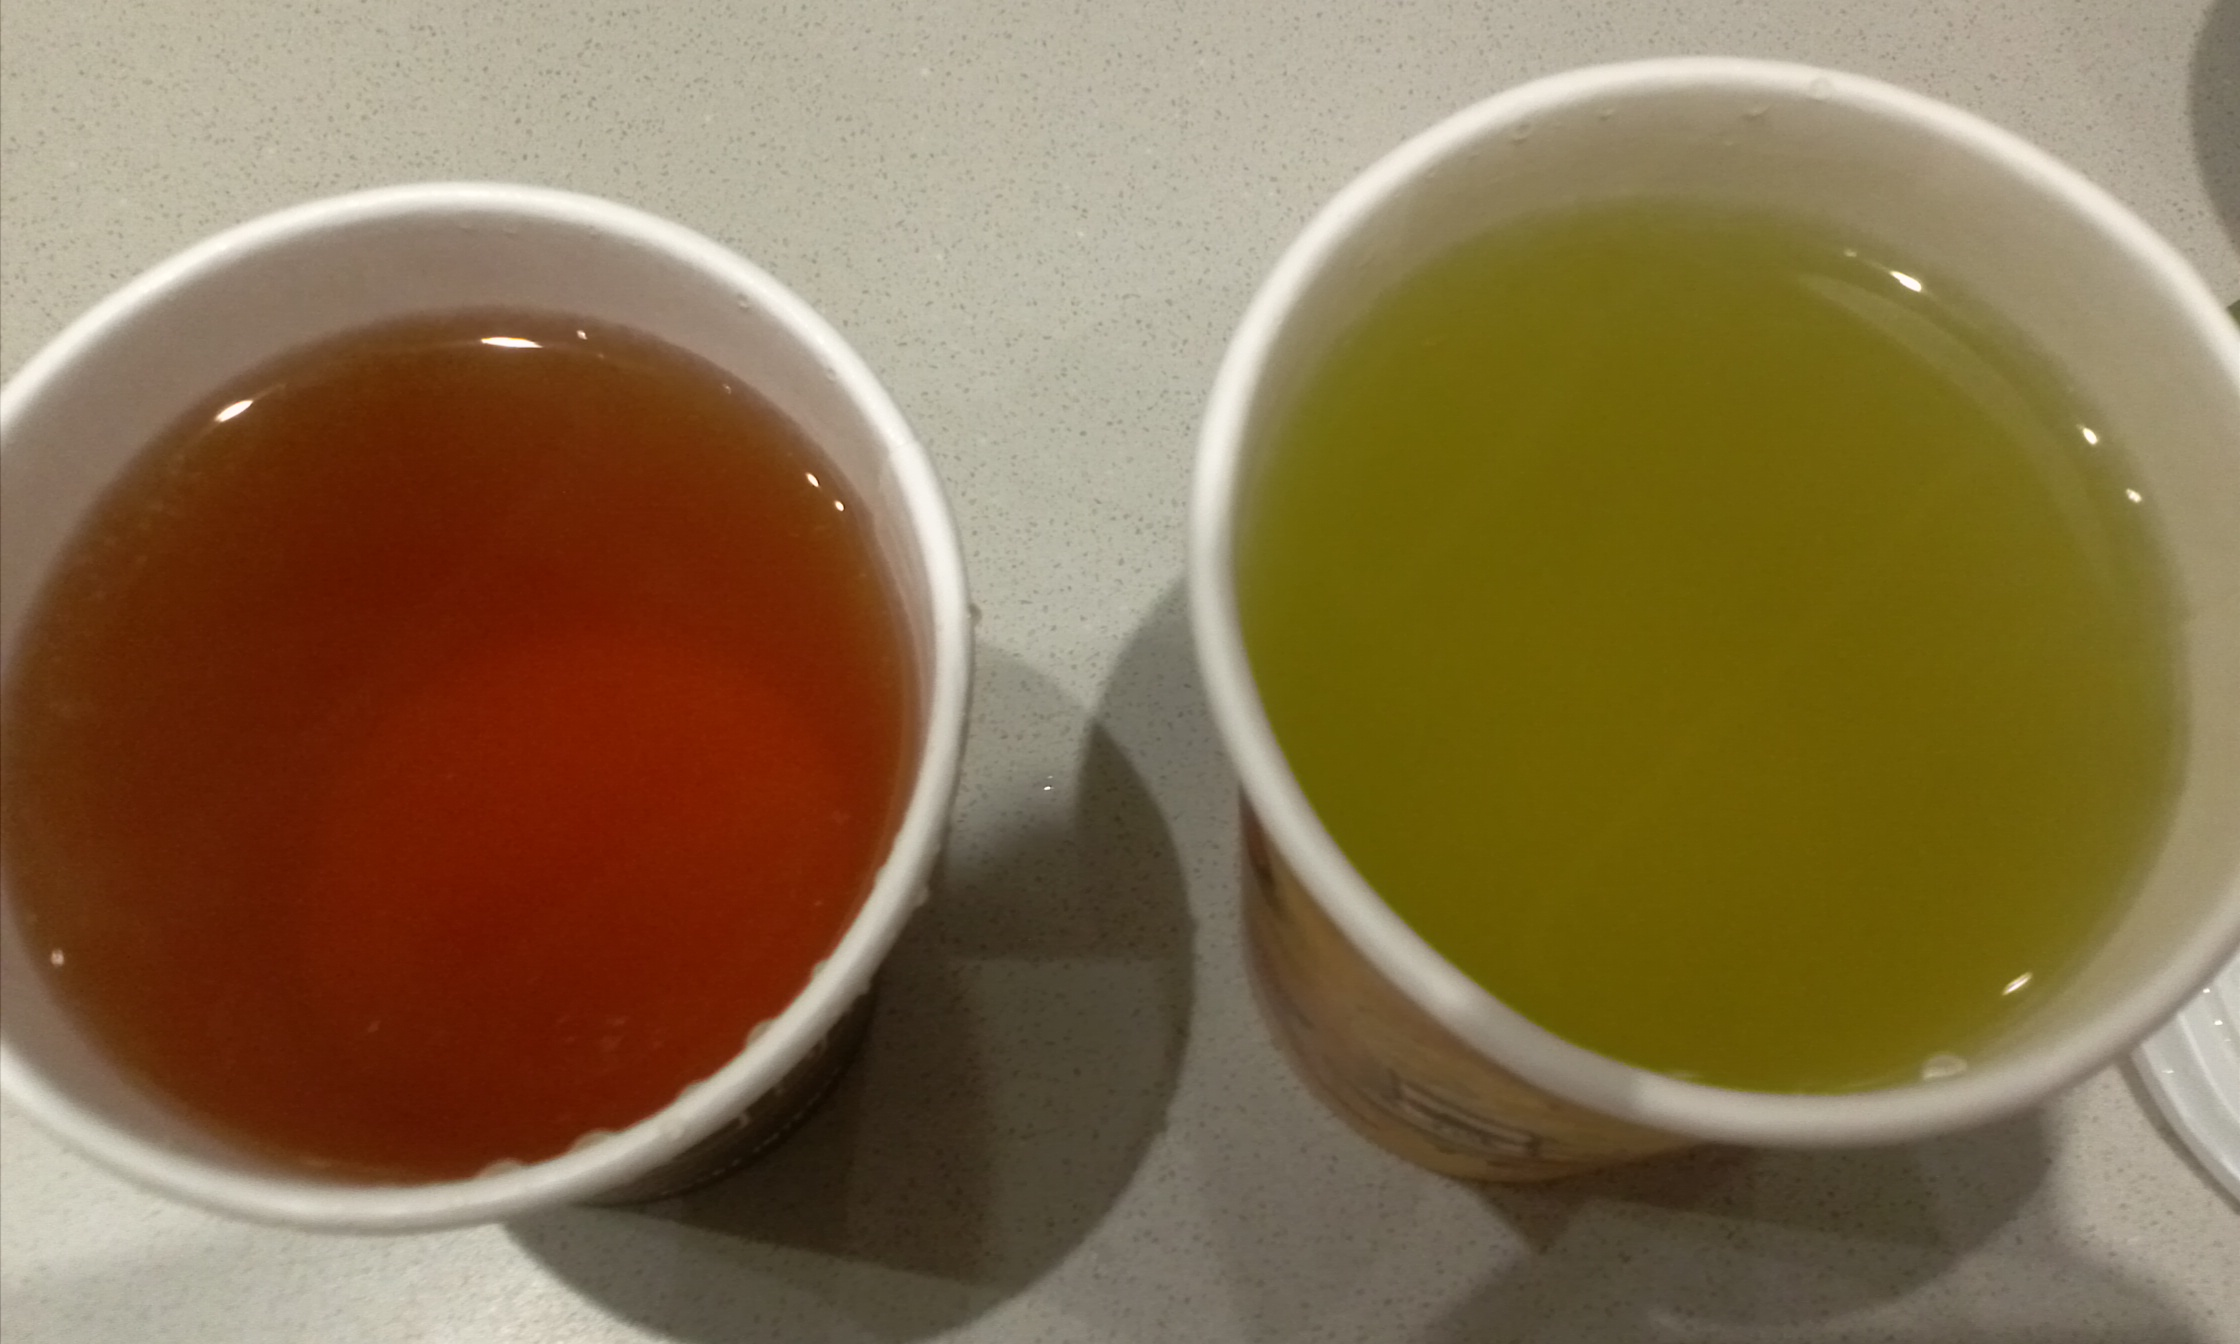 green-tea-colour-comparison